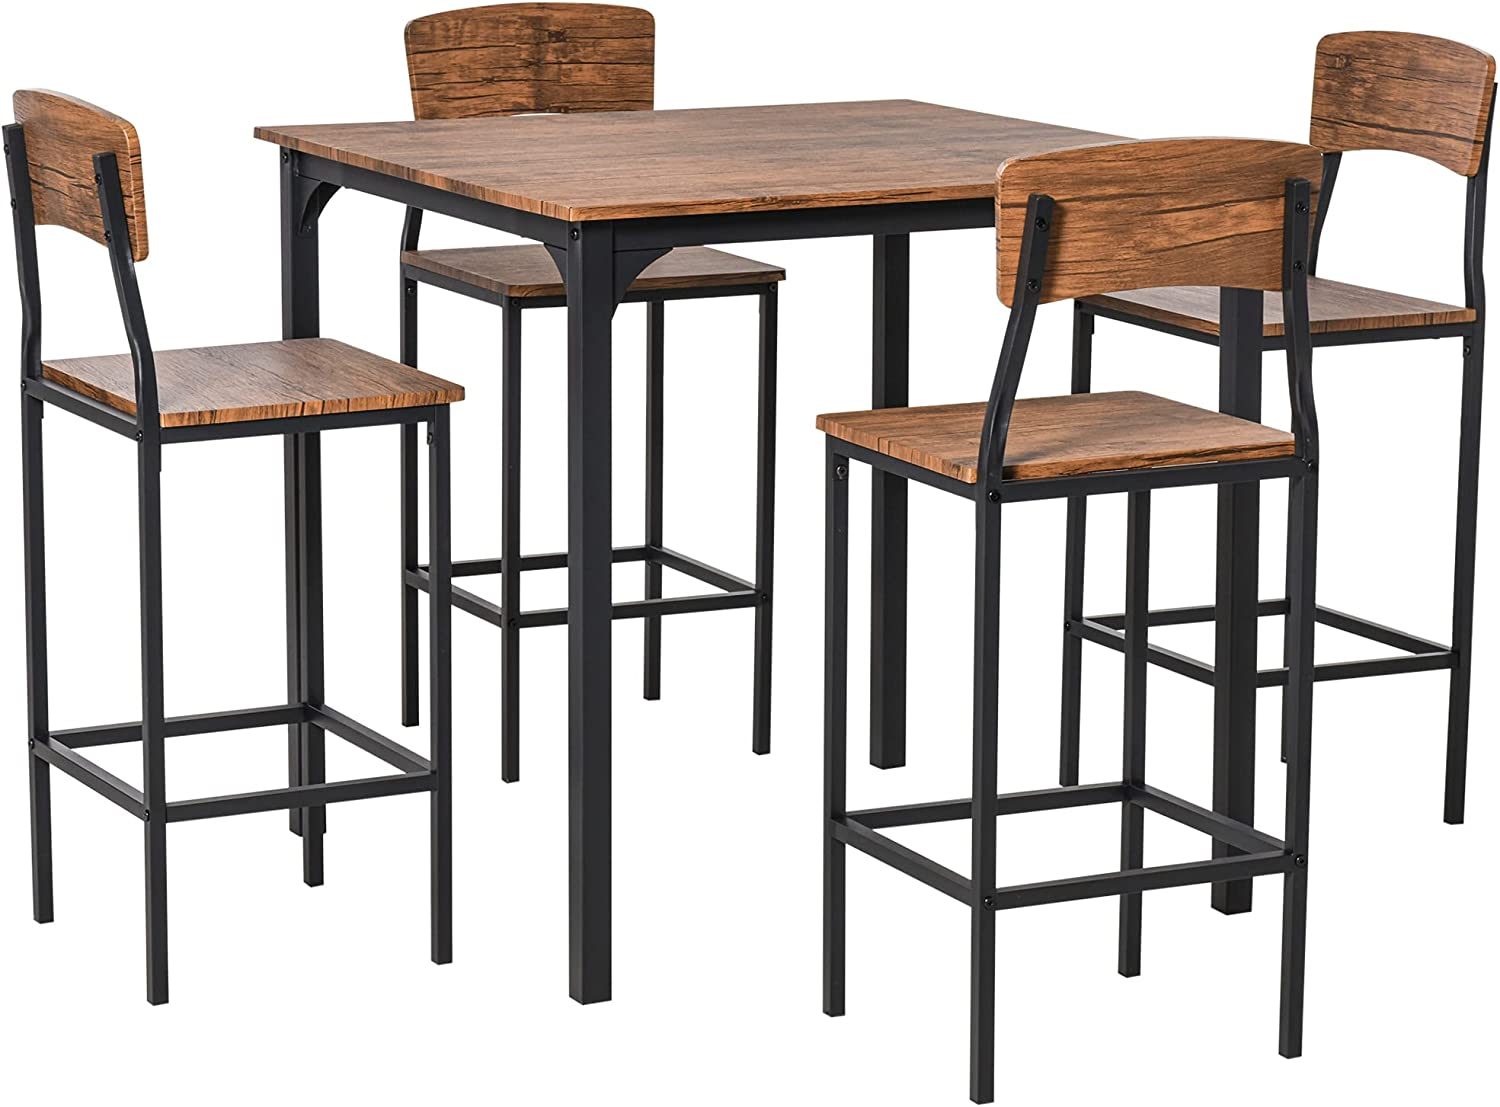 Homcom 5 Pc Modern Counter Height, Counter Height Kitchen Table And Chairs Set